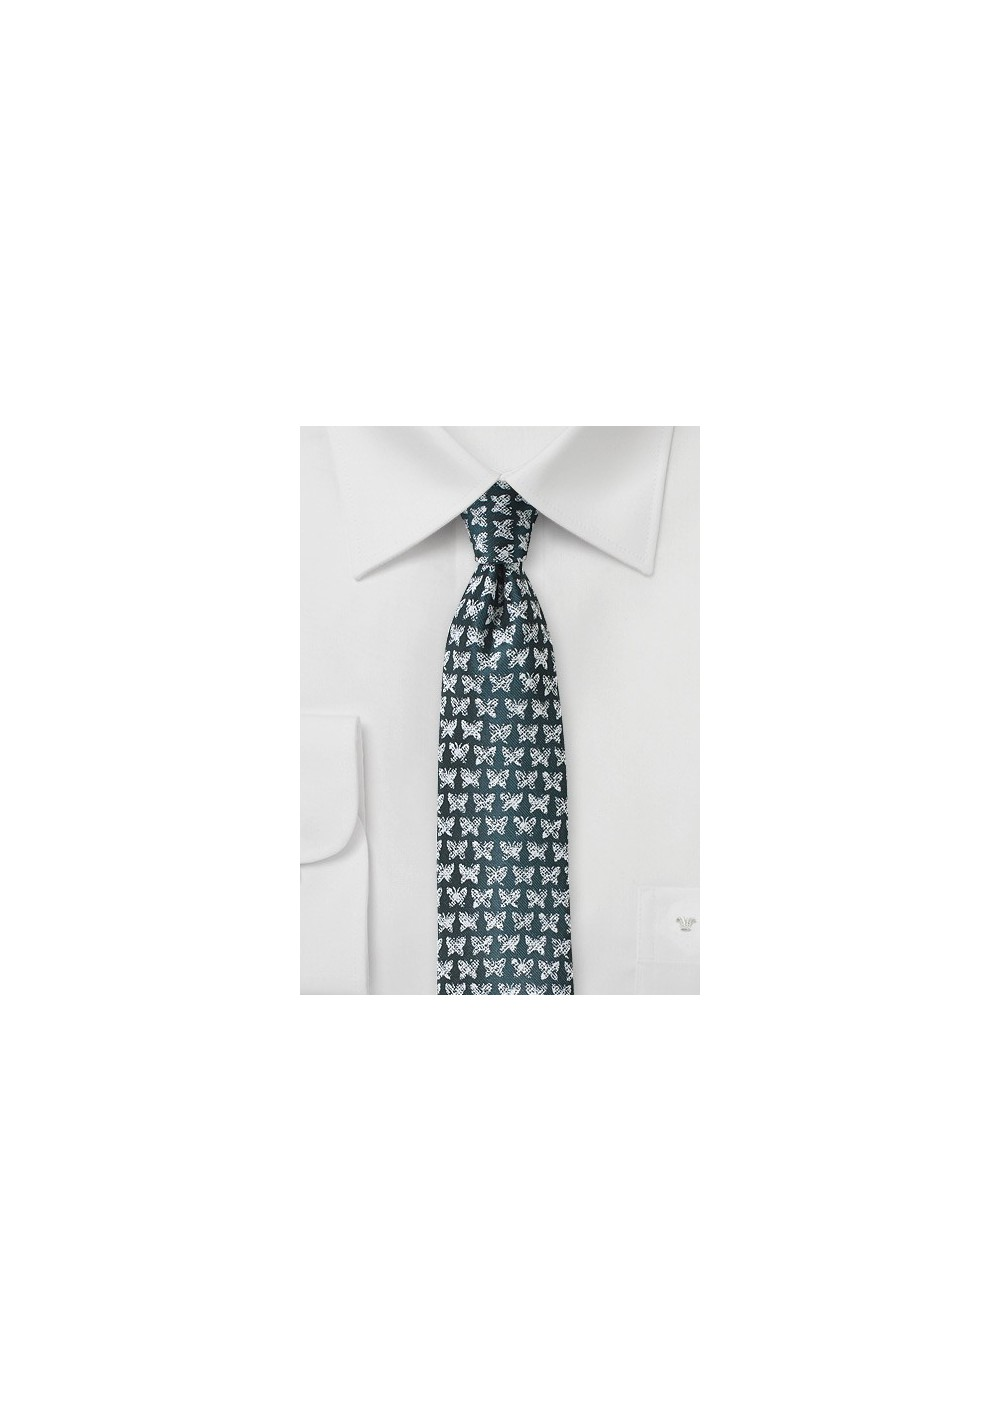 Butterfly Print Tie in Dark Spruce